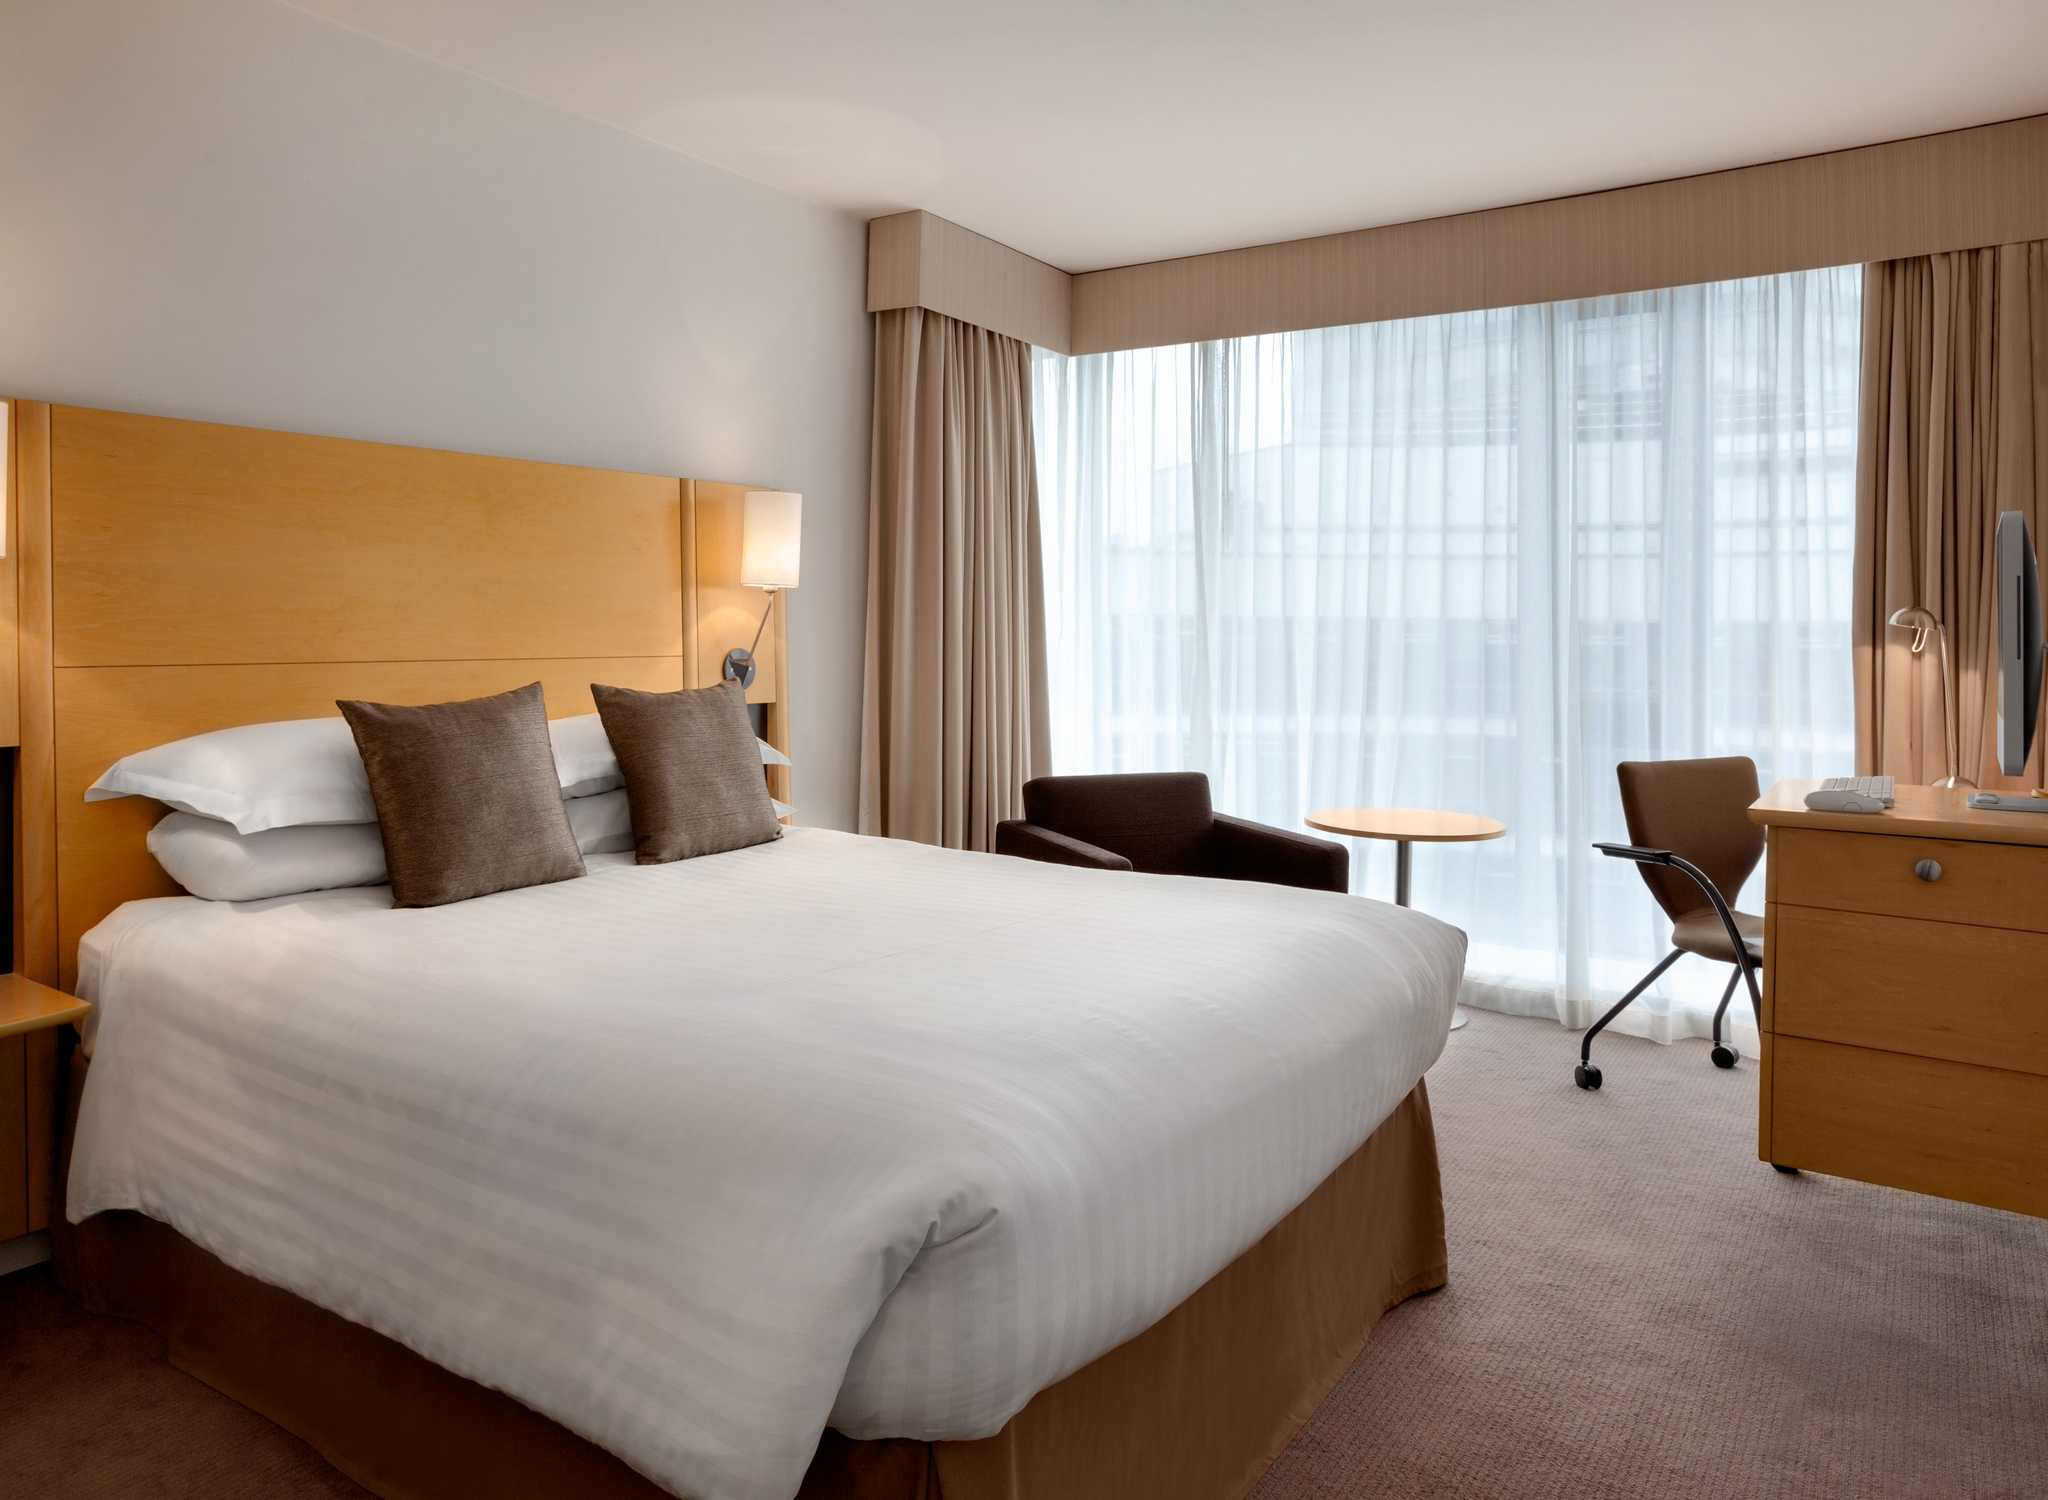 DT By Hilton Westminster Zimmer